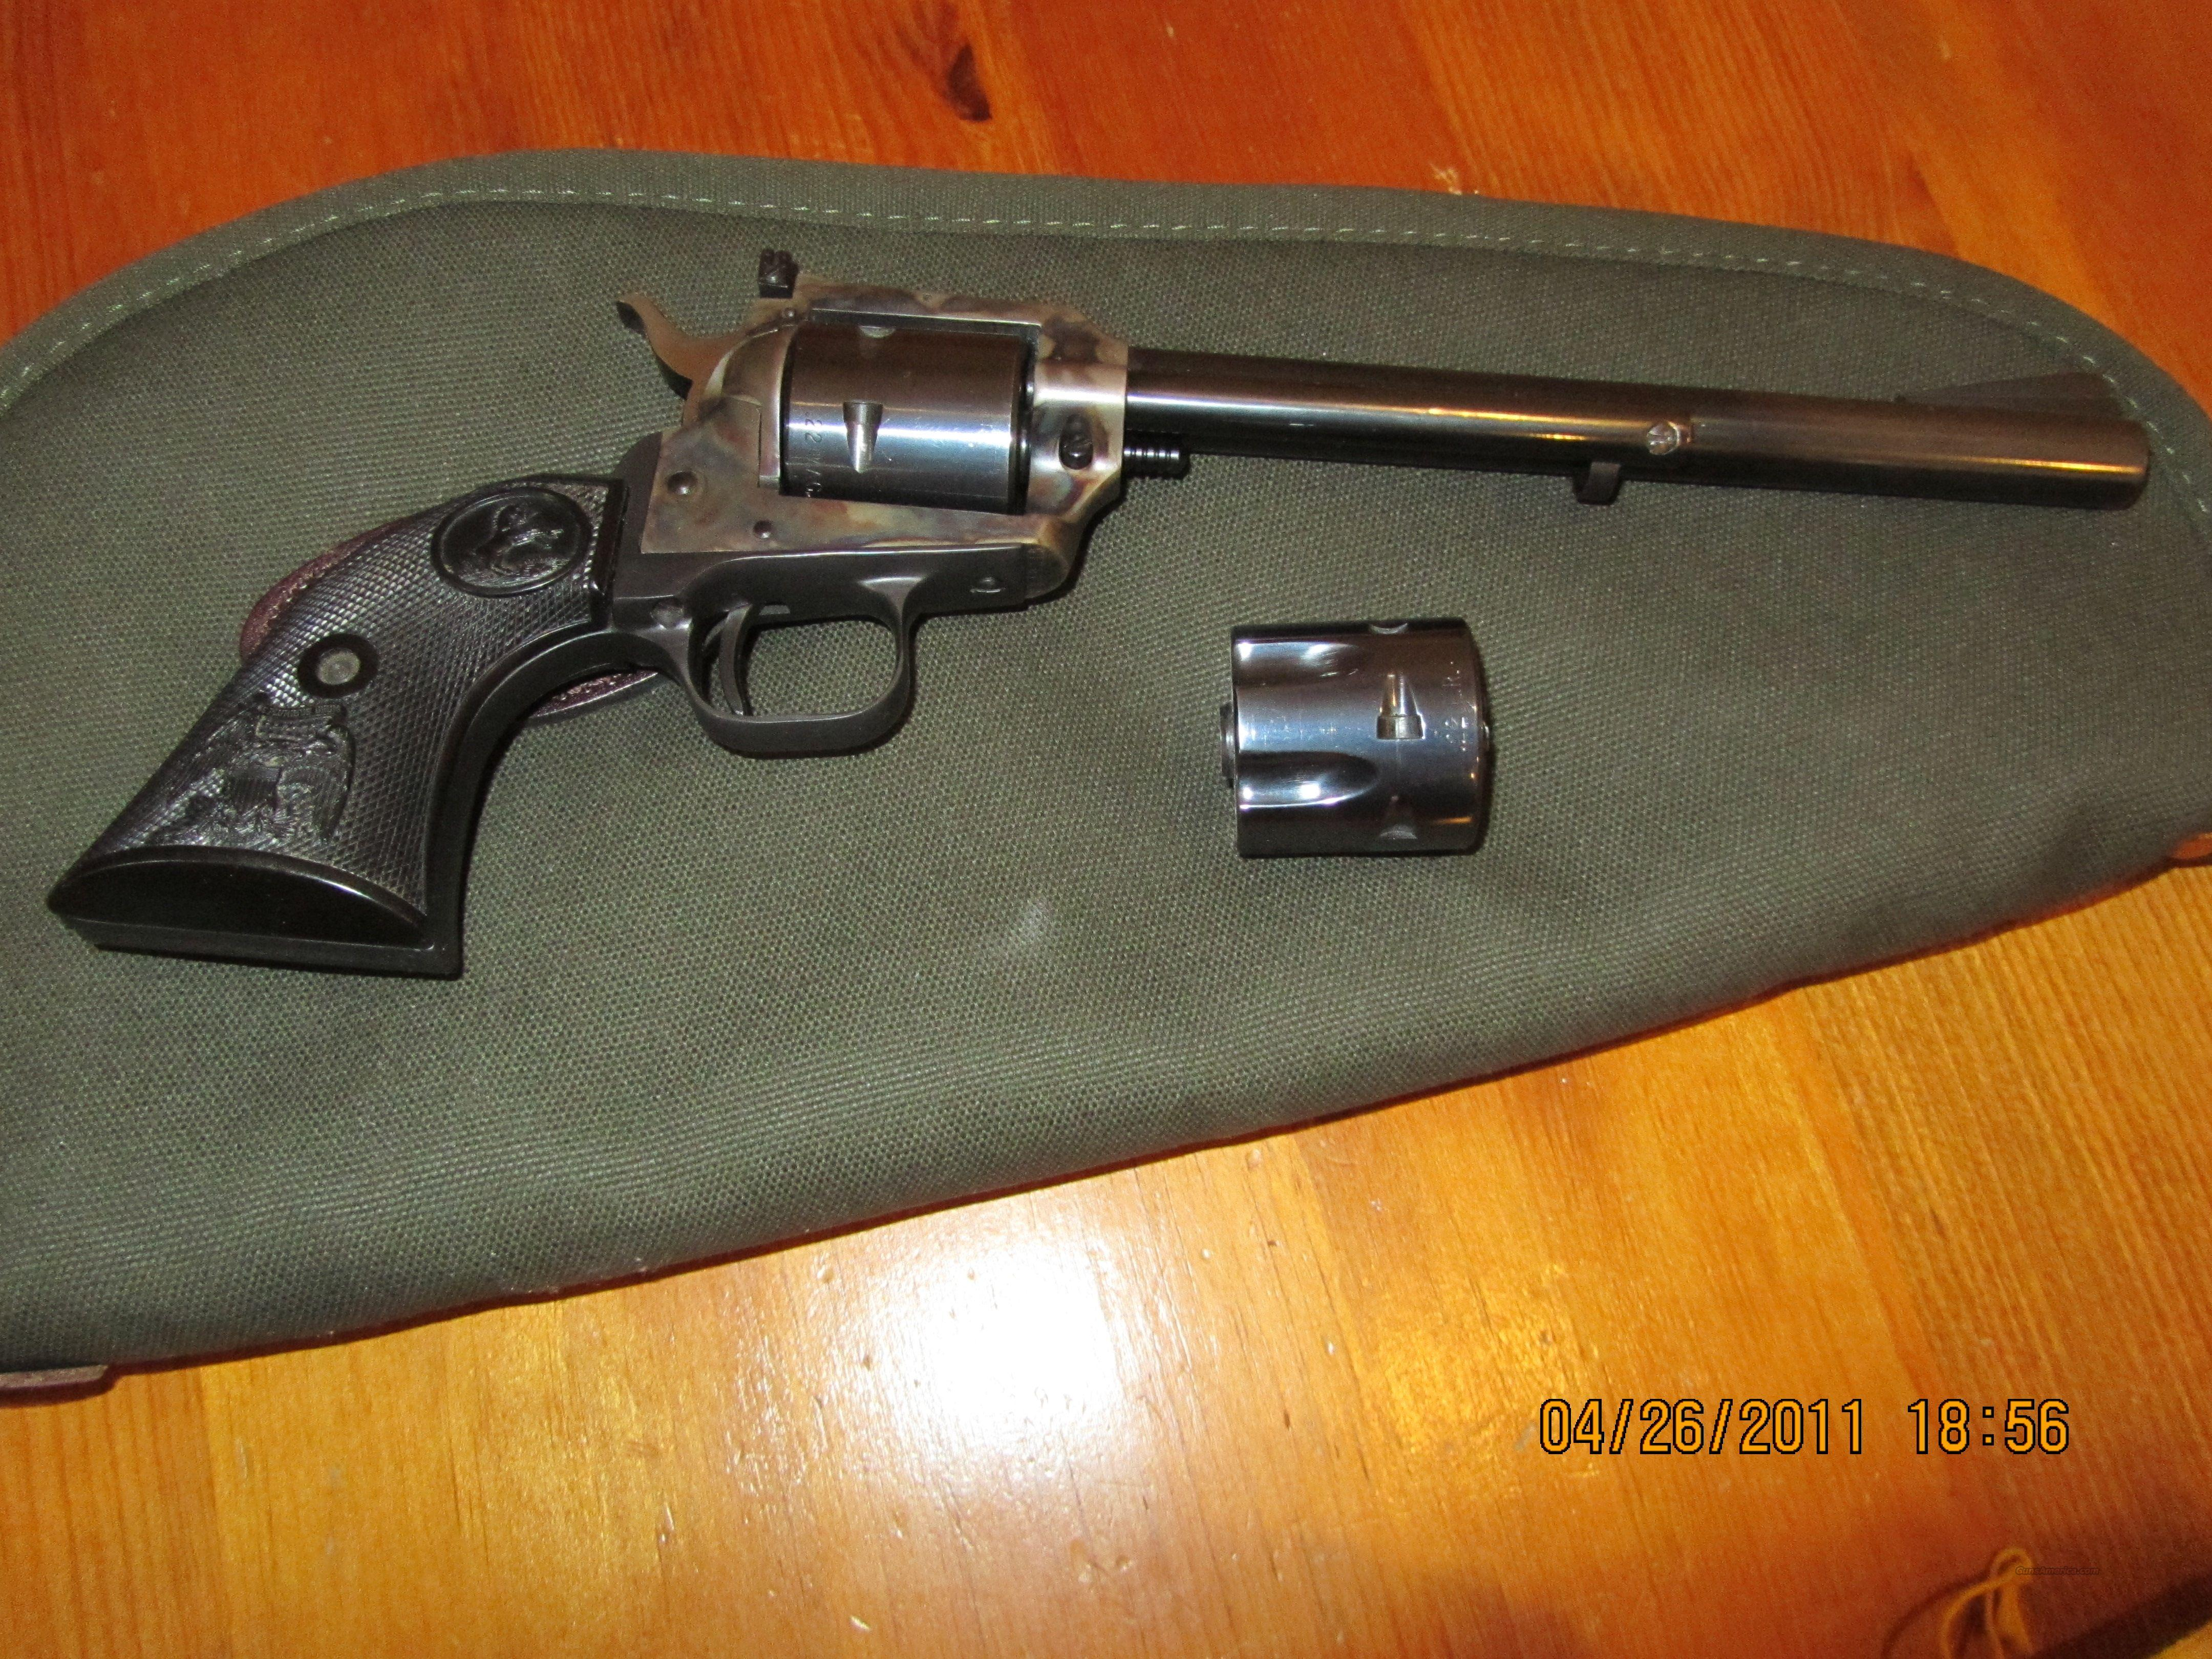 "Colt New Frontier Buntline .22 LR/.22 MAG - 7.5"" Barrel  Guns > Pistols > Colt Single Action Revolvers - Modern (22 Cal.)"